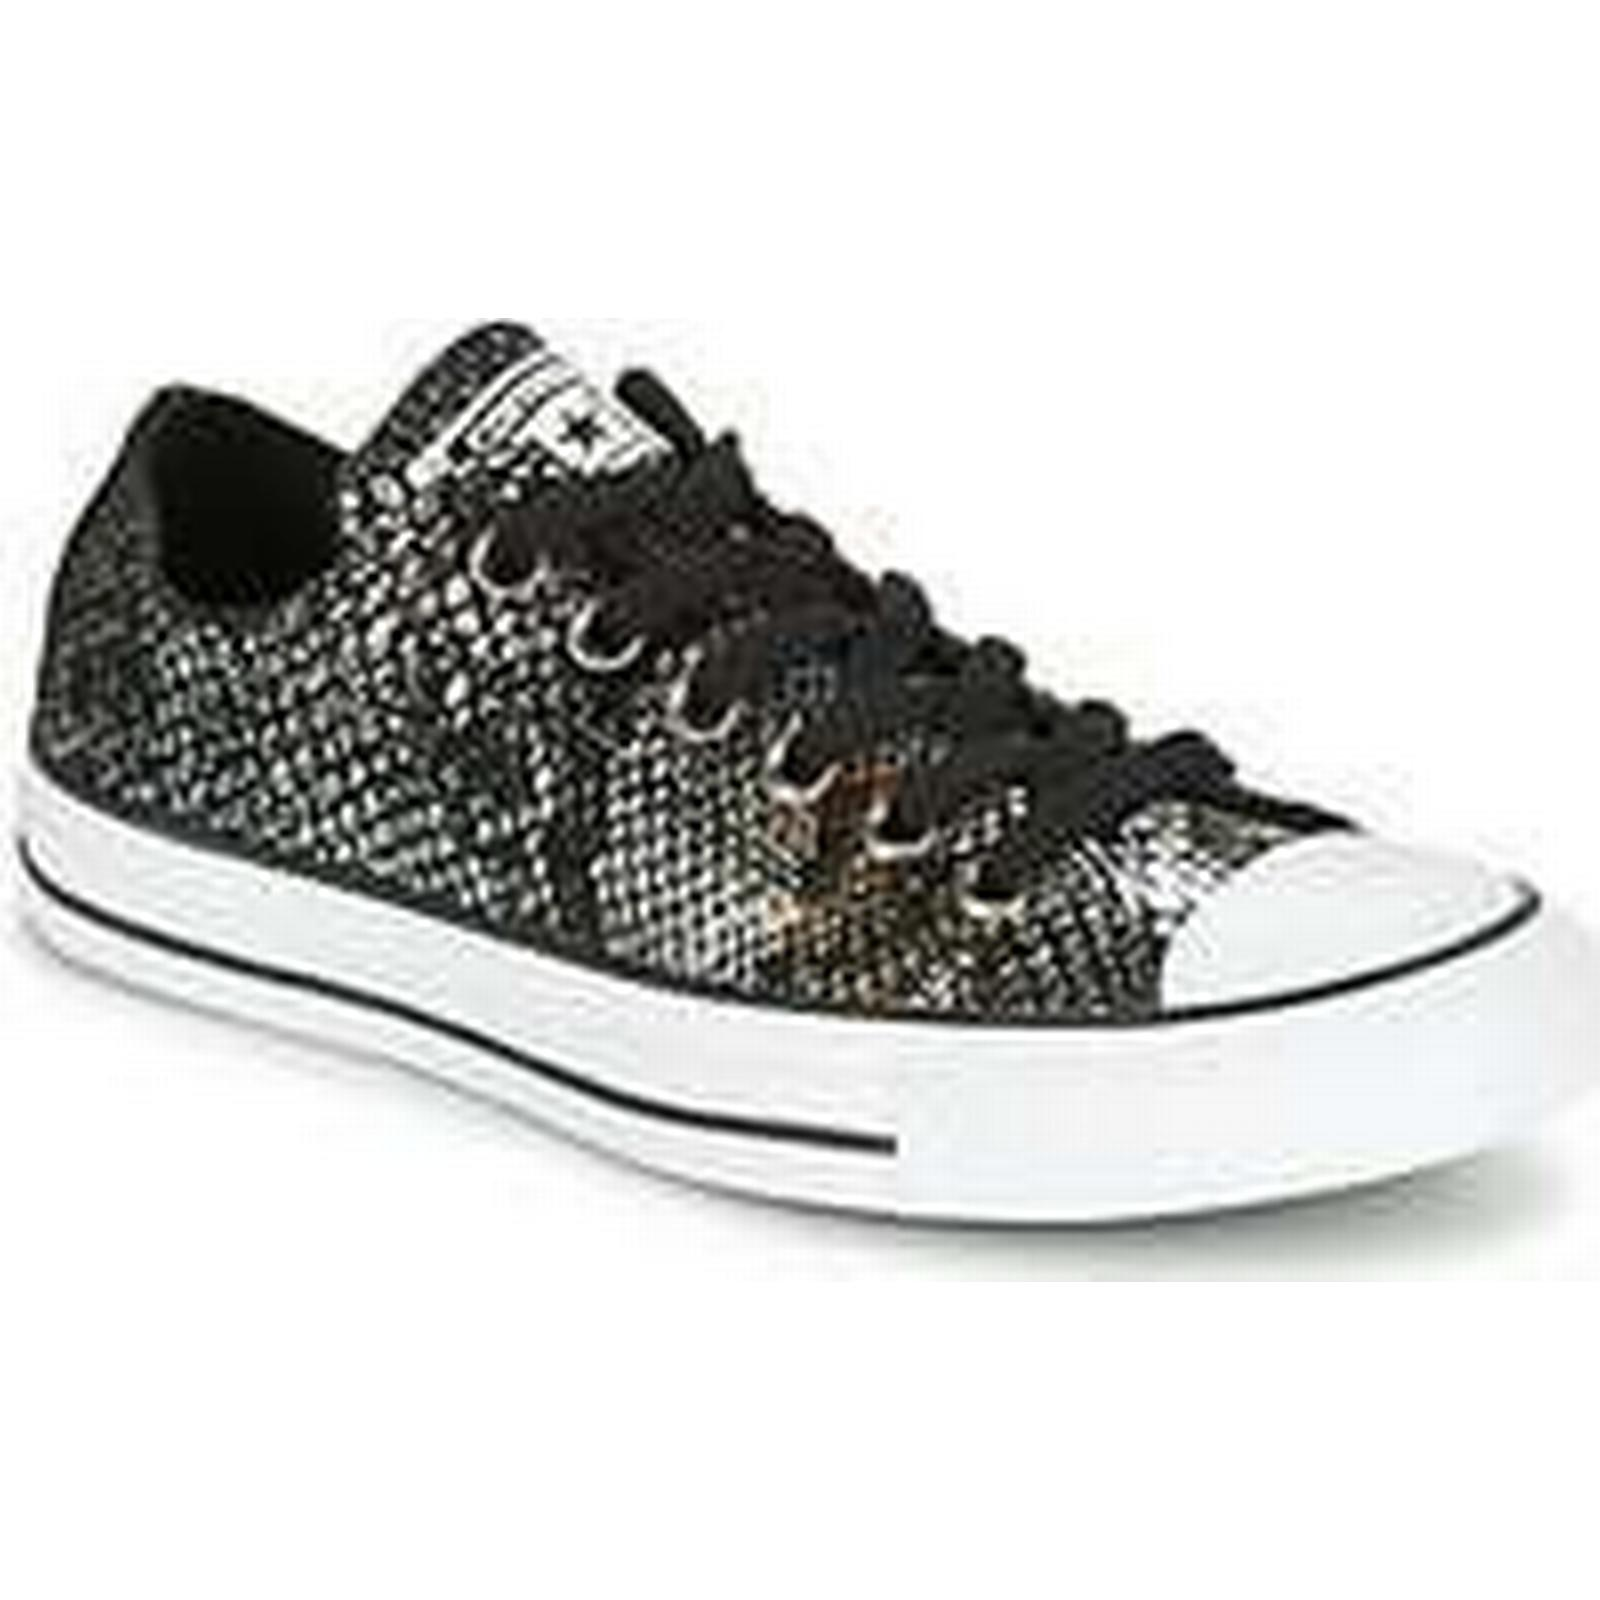 Spartoo.co.uk Converse CHUCK TAYLOR ALL STAR SNAKE FASHION SNAKE OX FASHION SNAKE STAR OX BLACK/BL women's Shoes (Trainers) in Black b541c0